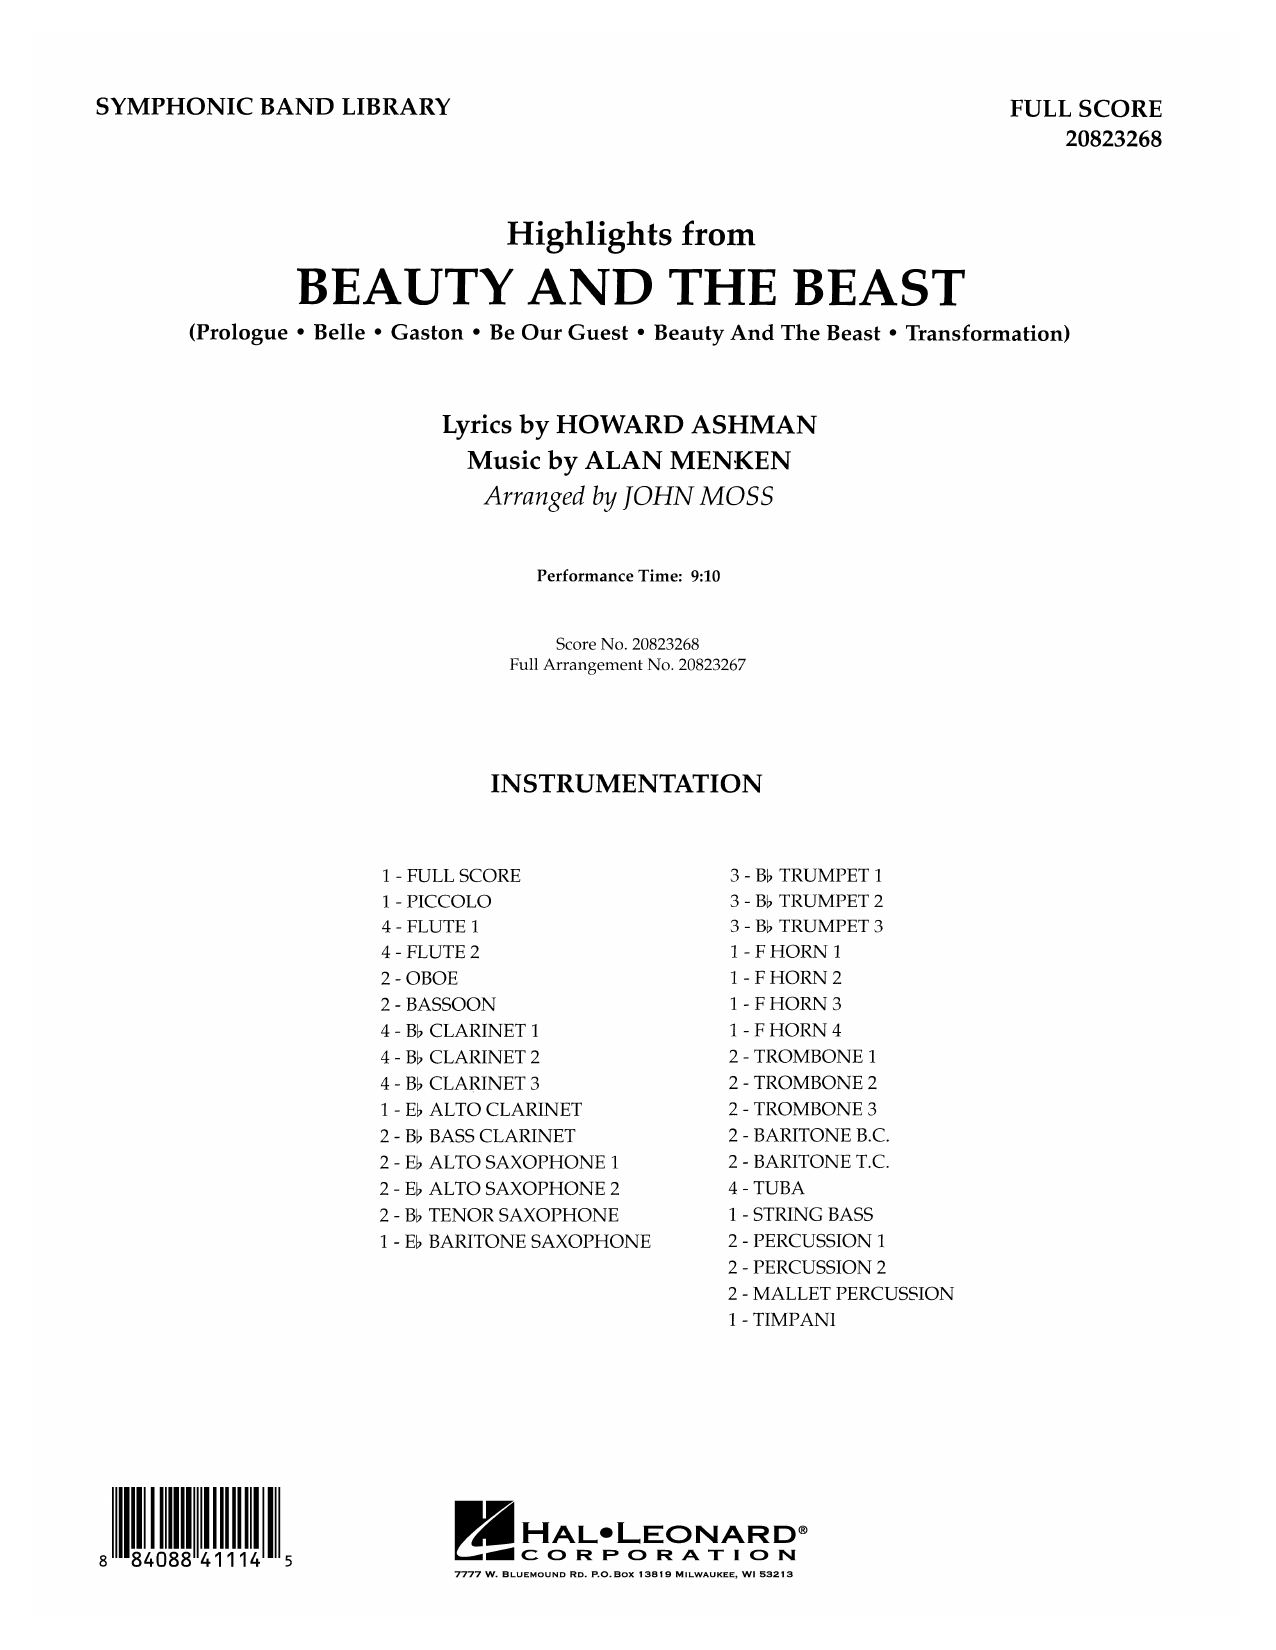 Highlights from Beauty and the Beast - Full Score Sheet Music